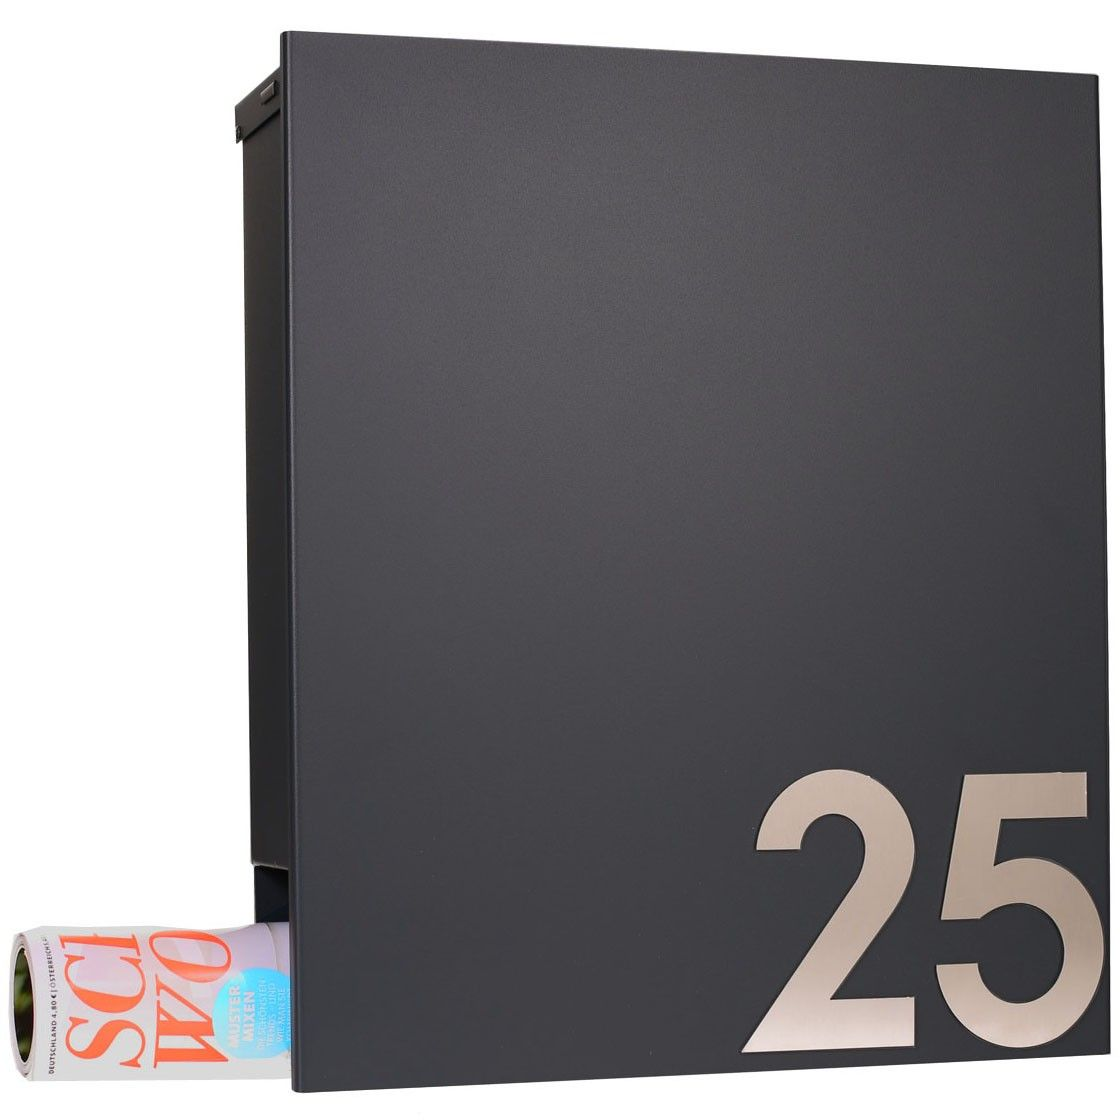 mocavi box 111 design briefkasten mit zeitungsfach anthrazit grau ral 7016 wandbriefkasten. Black Bedroom Furniture Sets. Home Design Ideas